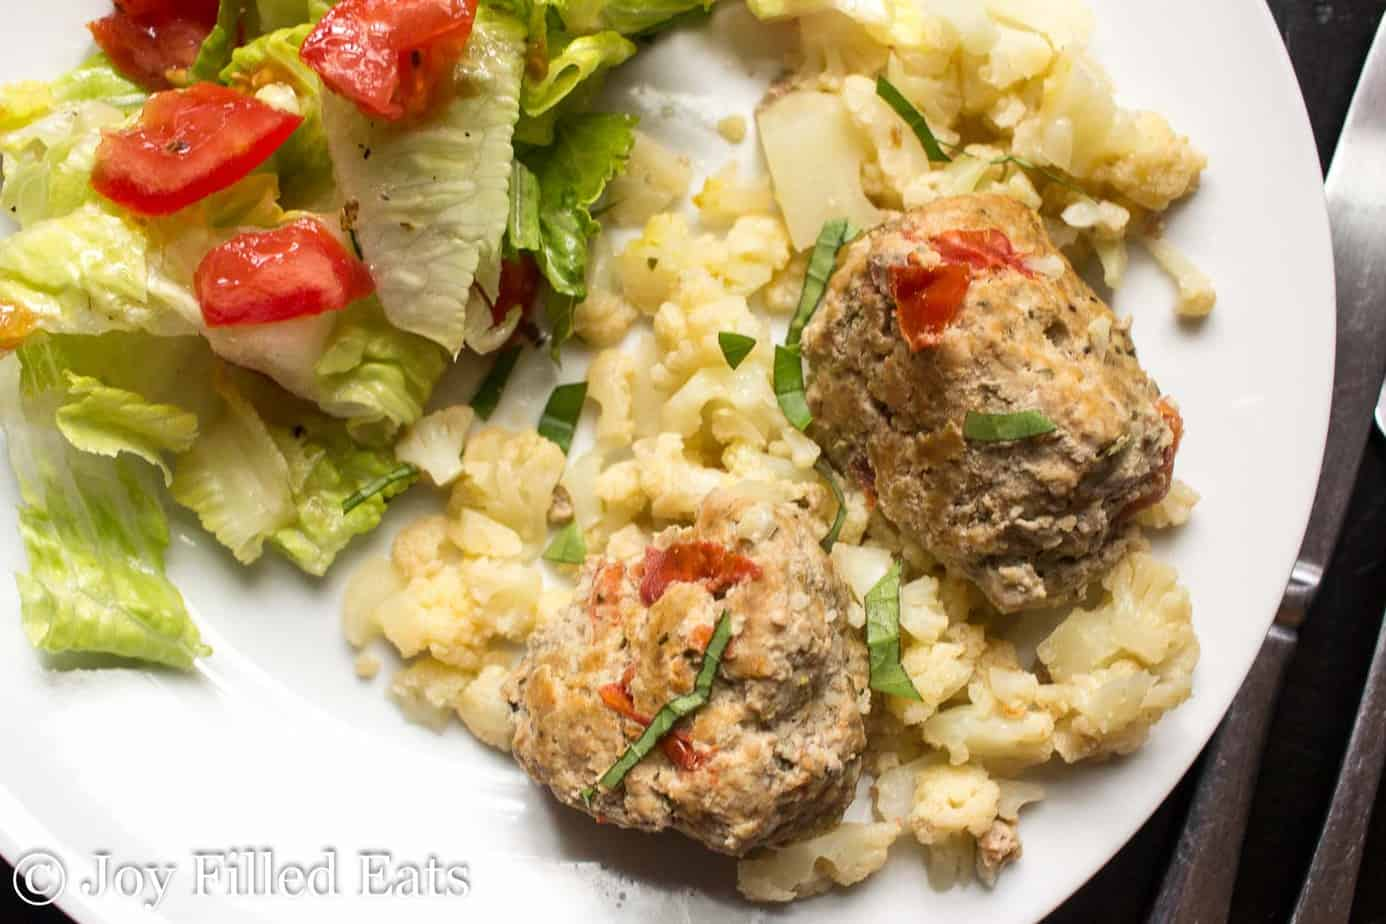 Skillet Basil & Tomato Meatballs - Low Carb, Grain & Gluten Free, THM S